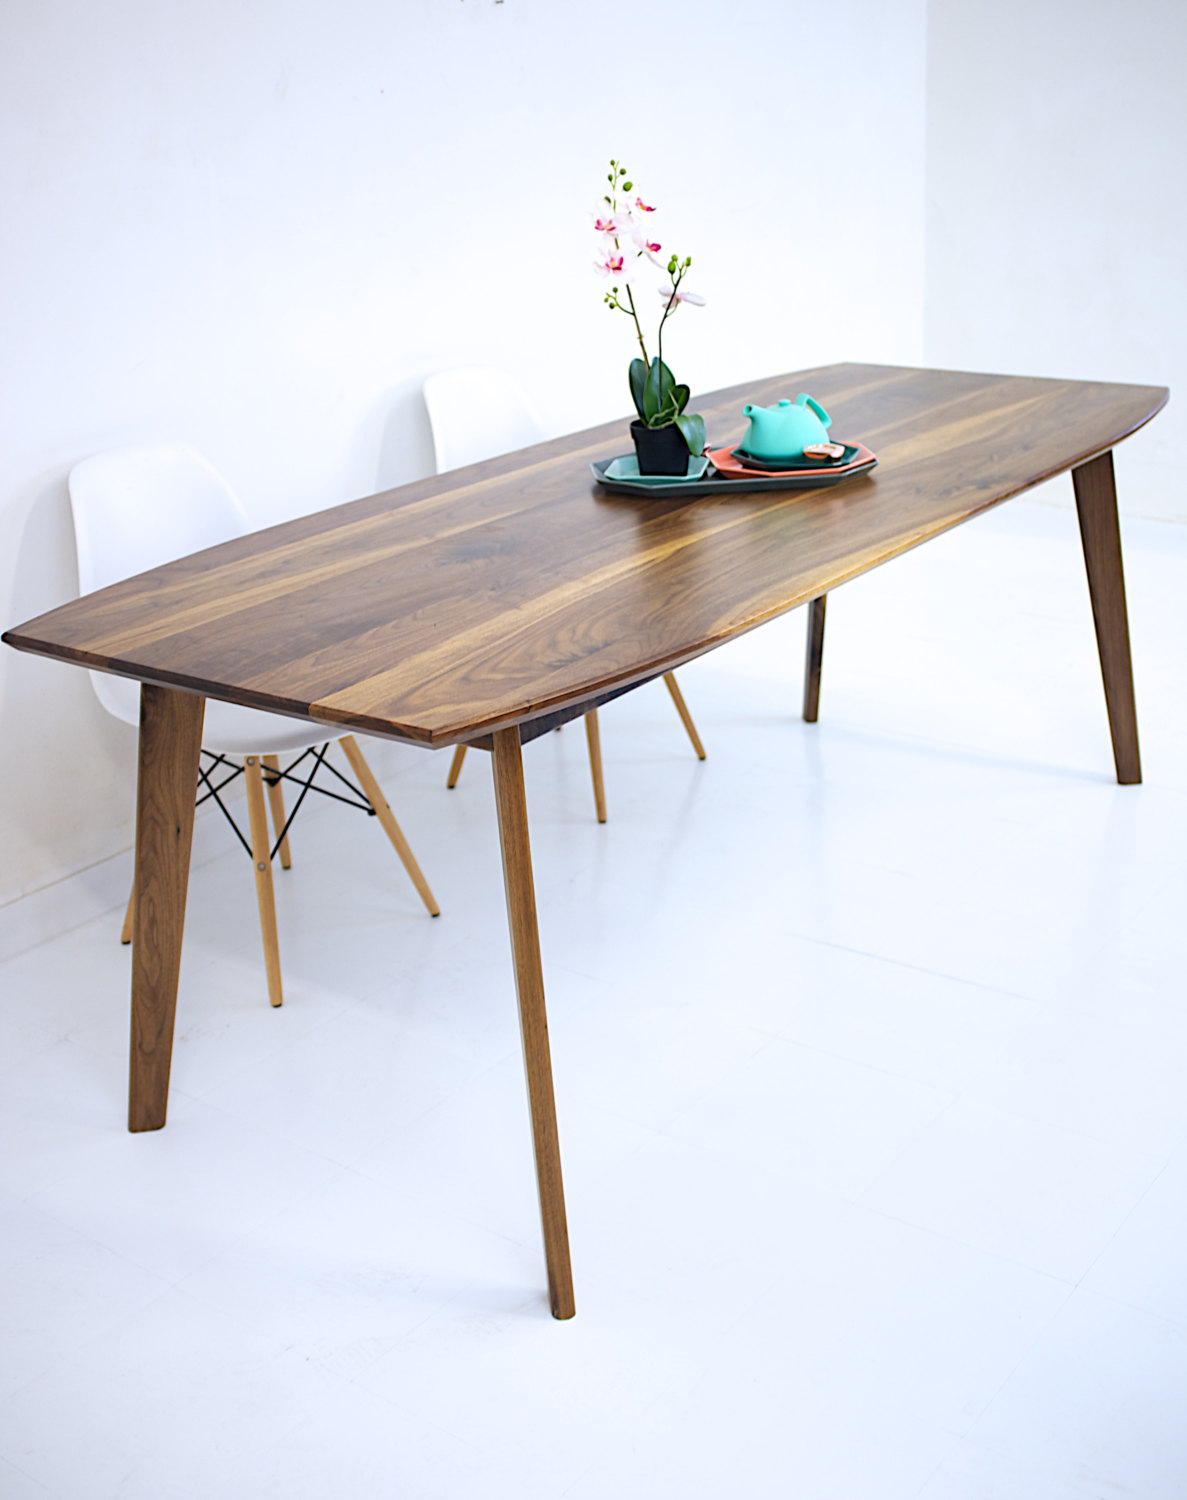 dining table walnut modern wood etsy fullxfull zoey night accent with baskets new home decor ideas mosaic kohls corner drawers small armchairs for living room hobby lobby sofa